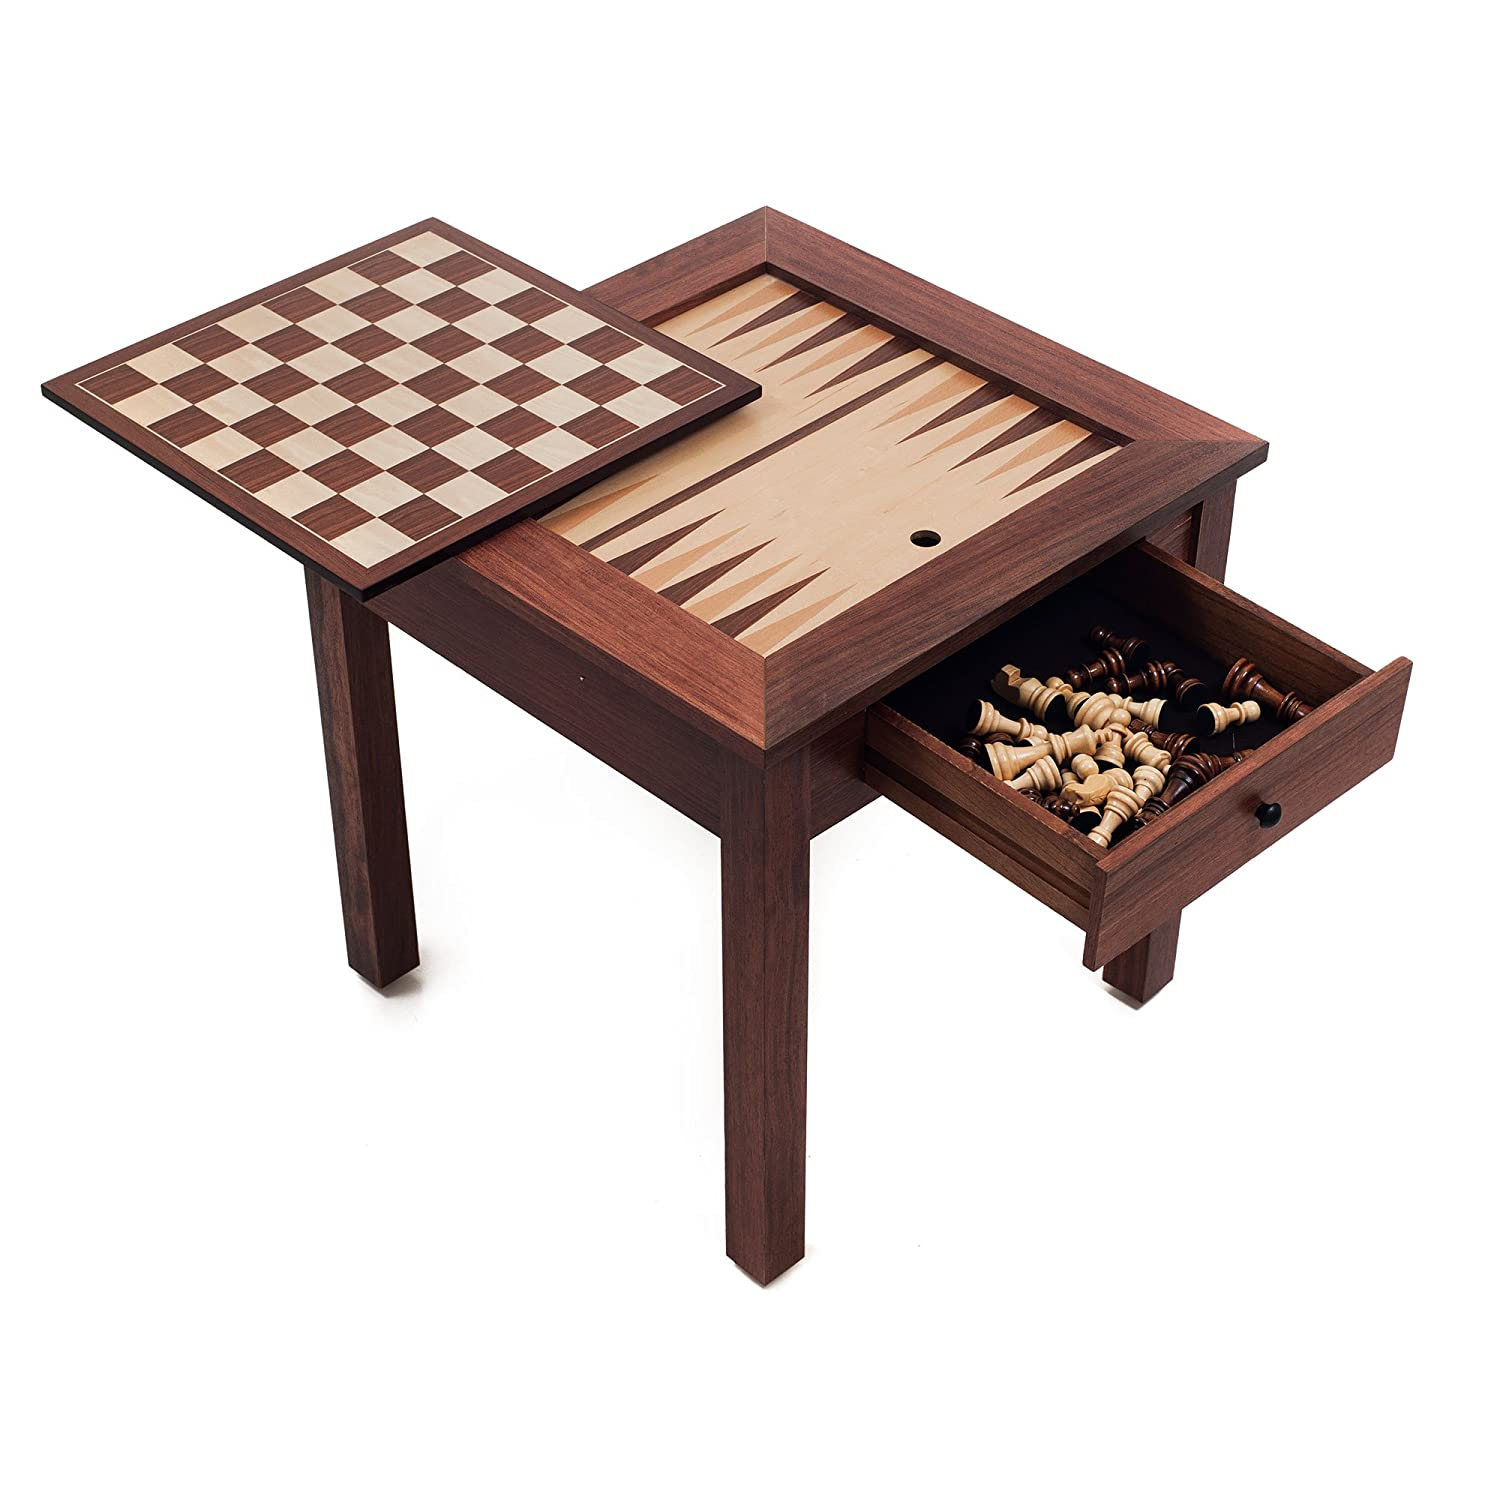 Merveilleux Amazon.com: Trademark Games Wood 3 In 1 Chess Backgammon Table: Toys U0026 Games